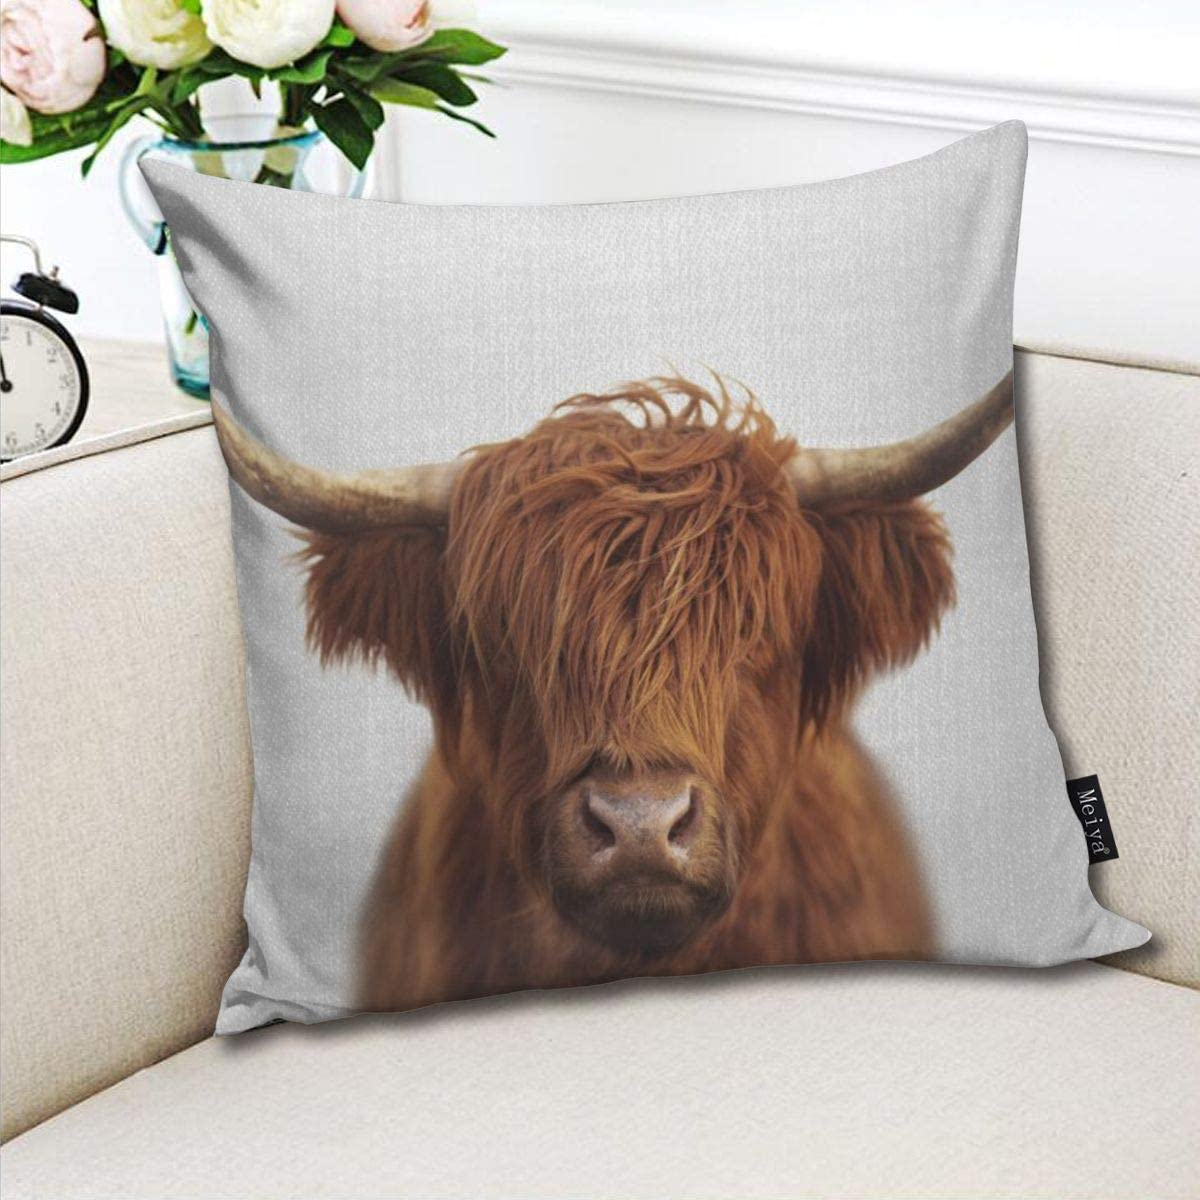 Cow print decorative throw pillow cover